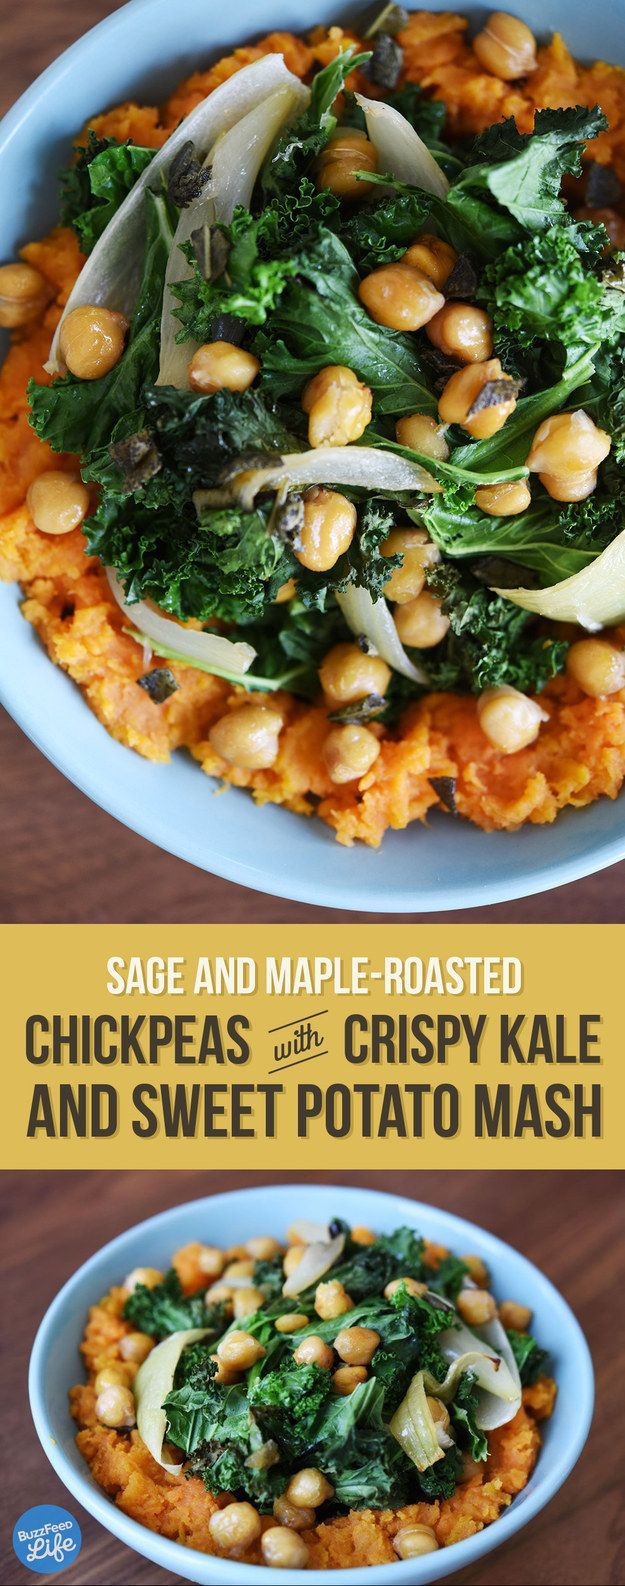 3. Sage and Maple-Roasted Chickpeas With Crispy Kale and Sweet Potato Mash